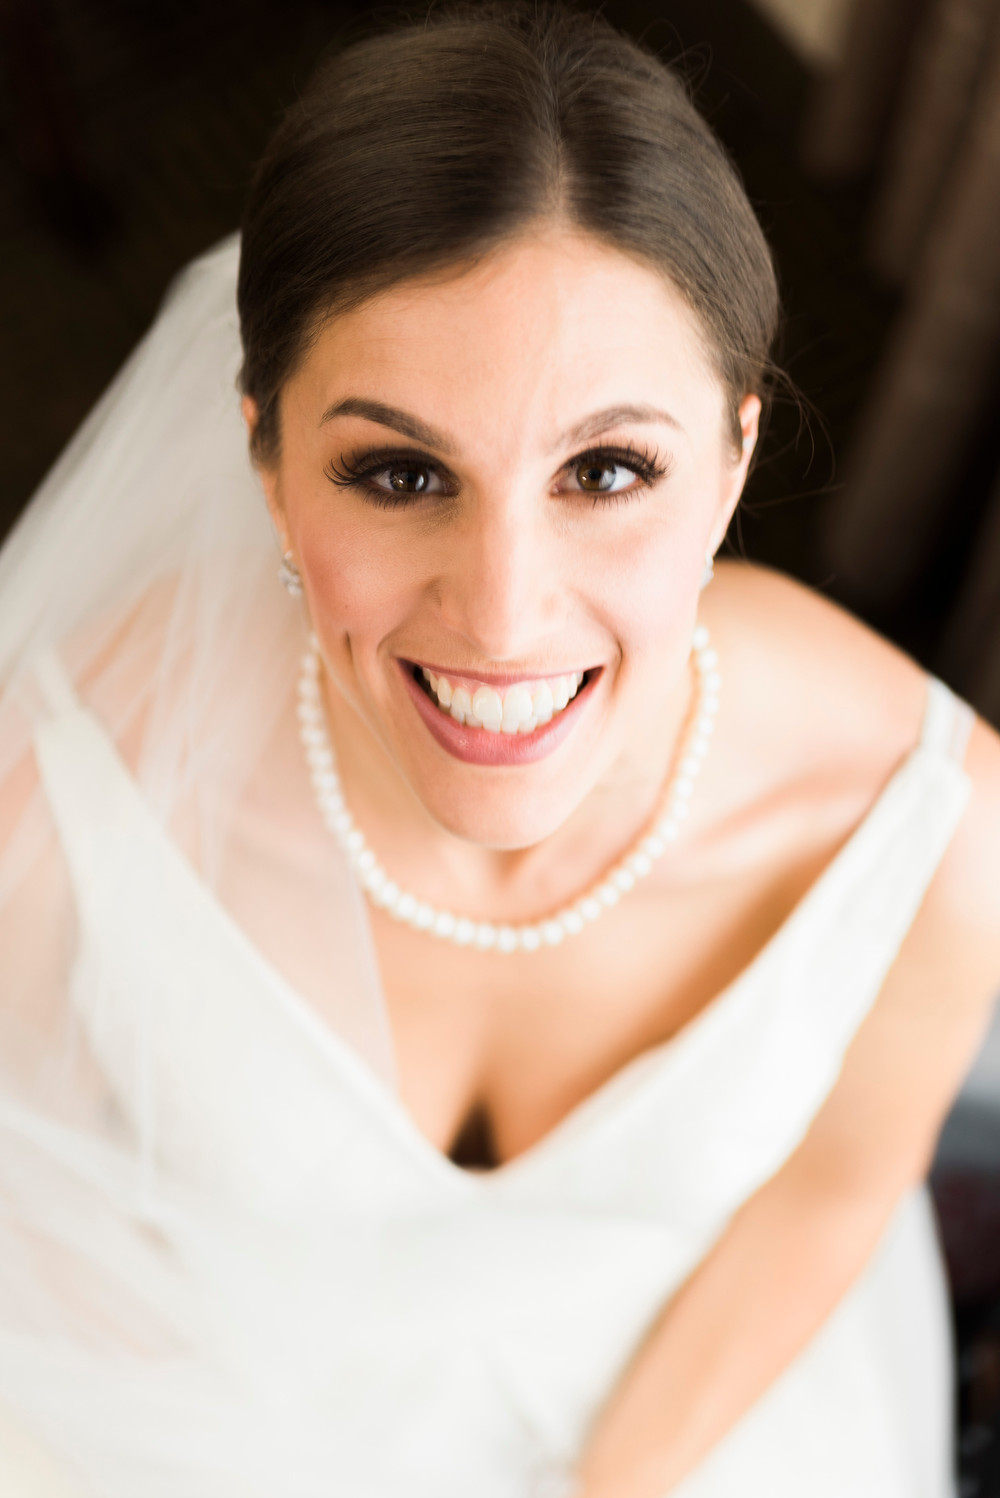 maine bride before she sees her groom at St Josephs church in portland maine